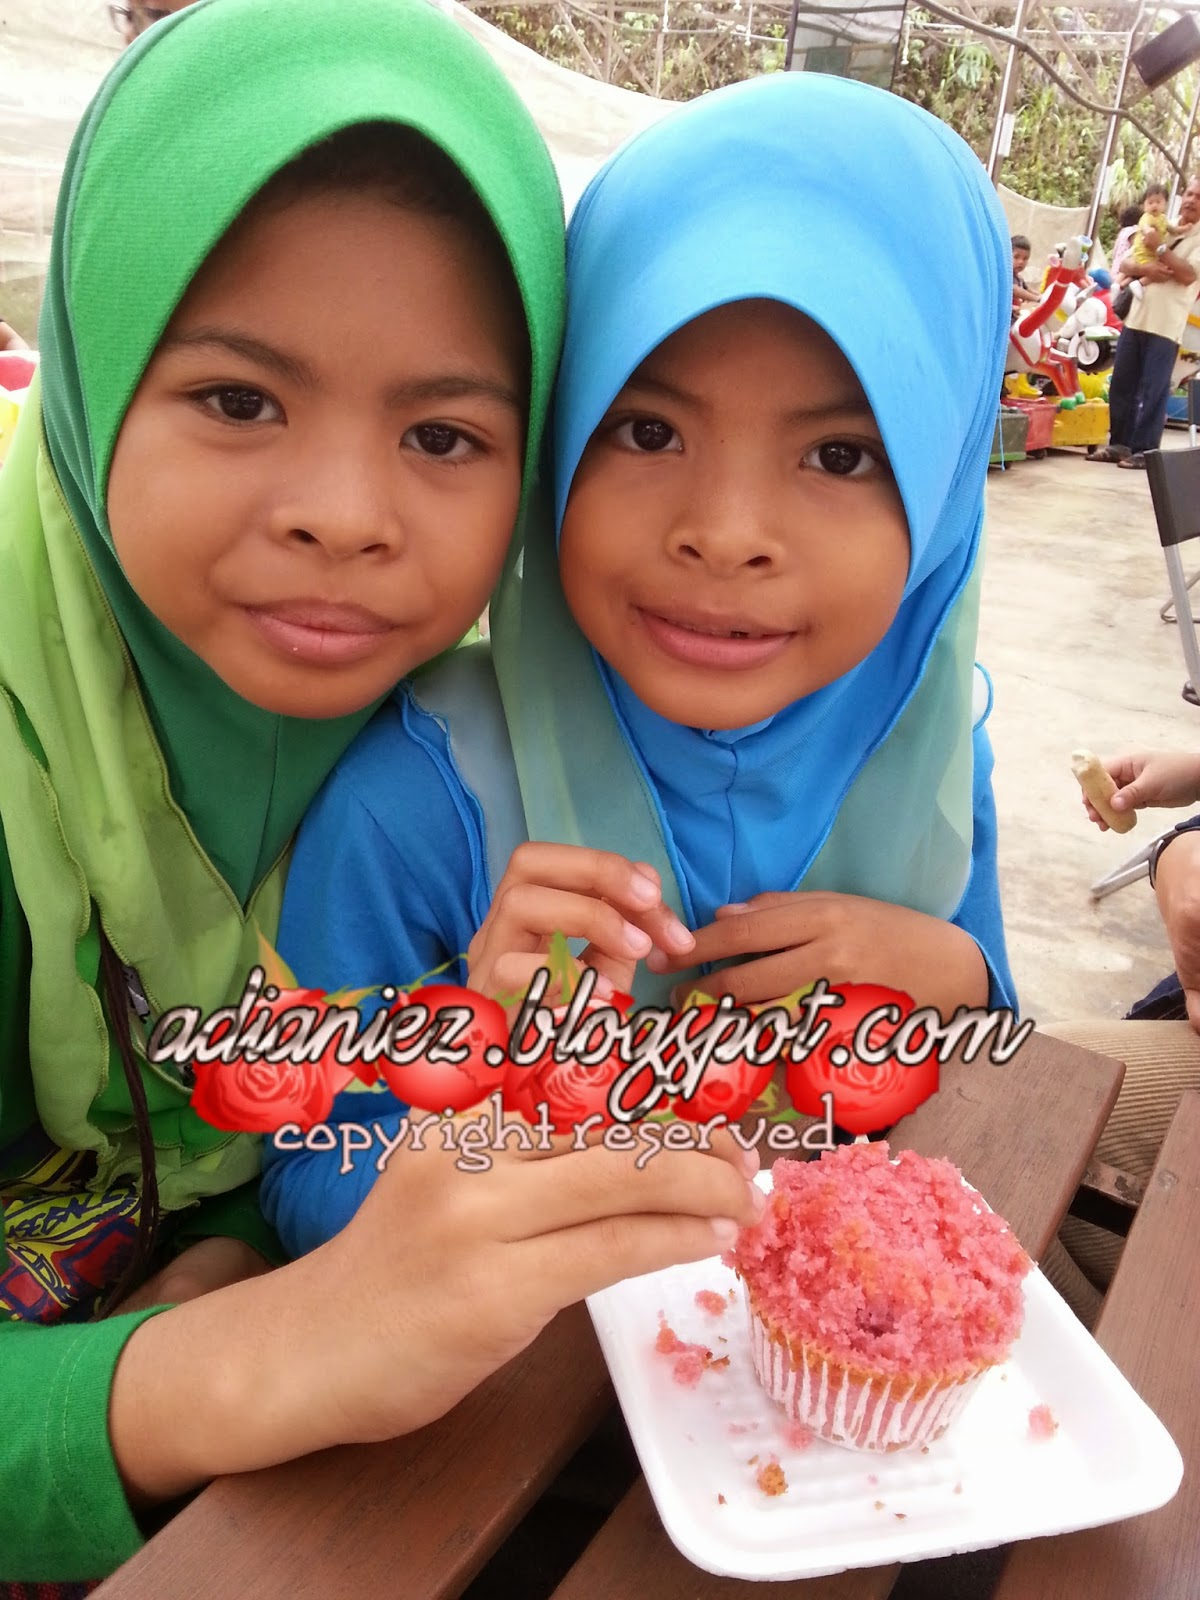 CACTUS VALLEY & BIG RED STRAWBERRY FARM ~ MARI KITA GI PETIK STRAWBERRY ANAK-ANAK IBU